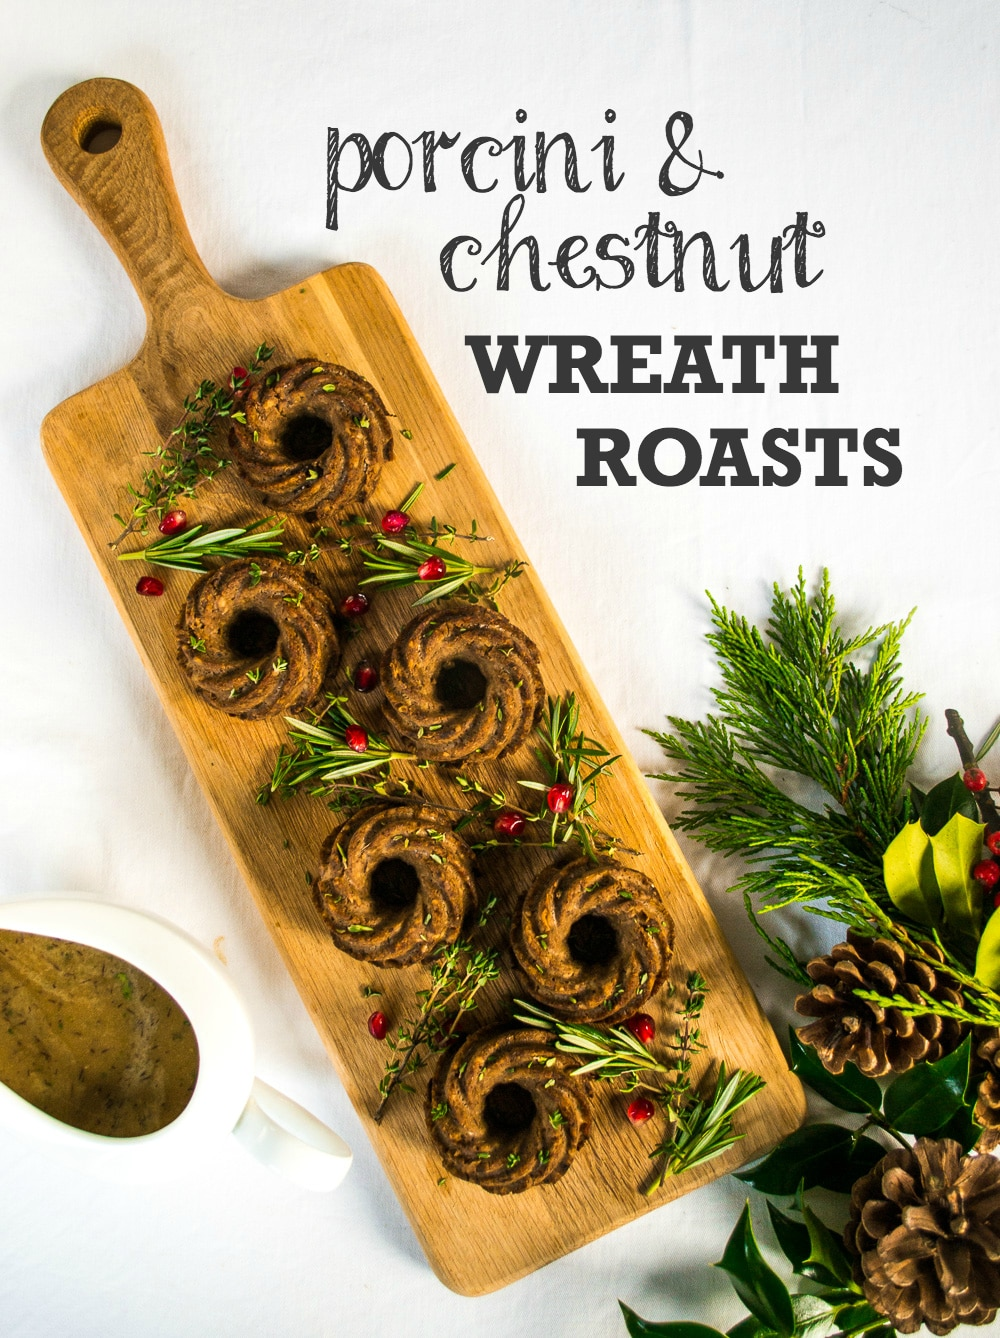 Porcini & Chestnut Wreath Roasts